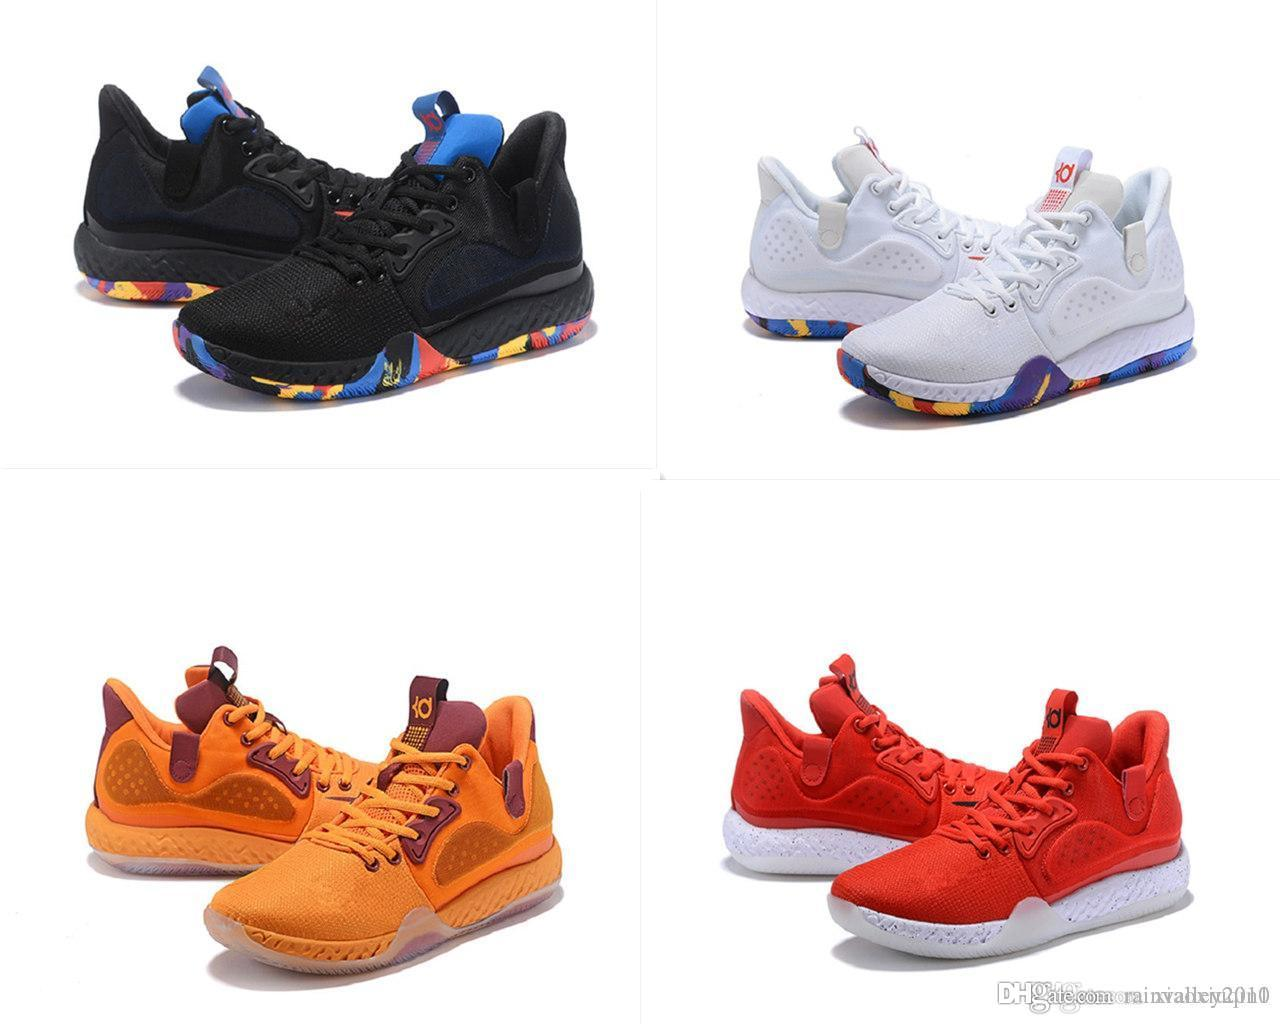 low priced ea4e4 b9c46 2019 Mens KD Trey 6 Basketball Shoes For Sale MVP BHM Colorful Black White  Gold Kevin Durant Vi Kids Boots Sneakers With Original Box From  Rainvalley2010, ...